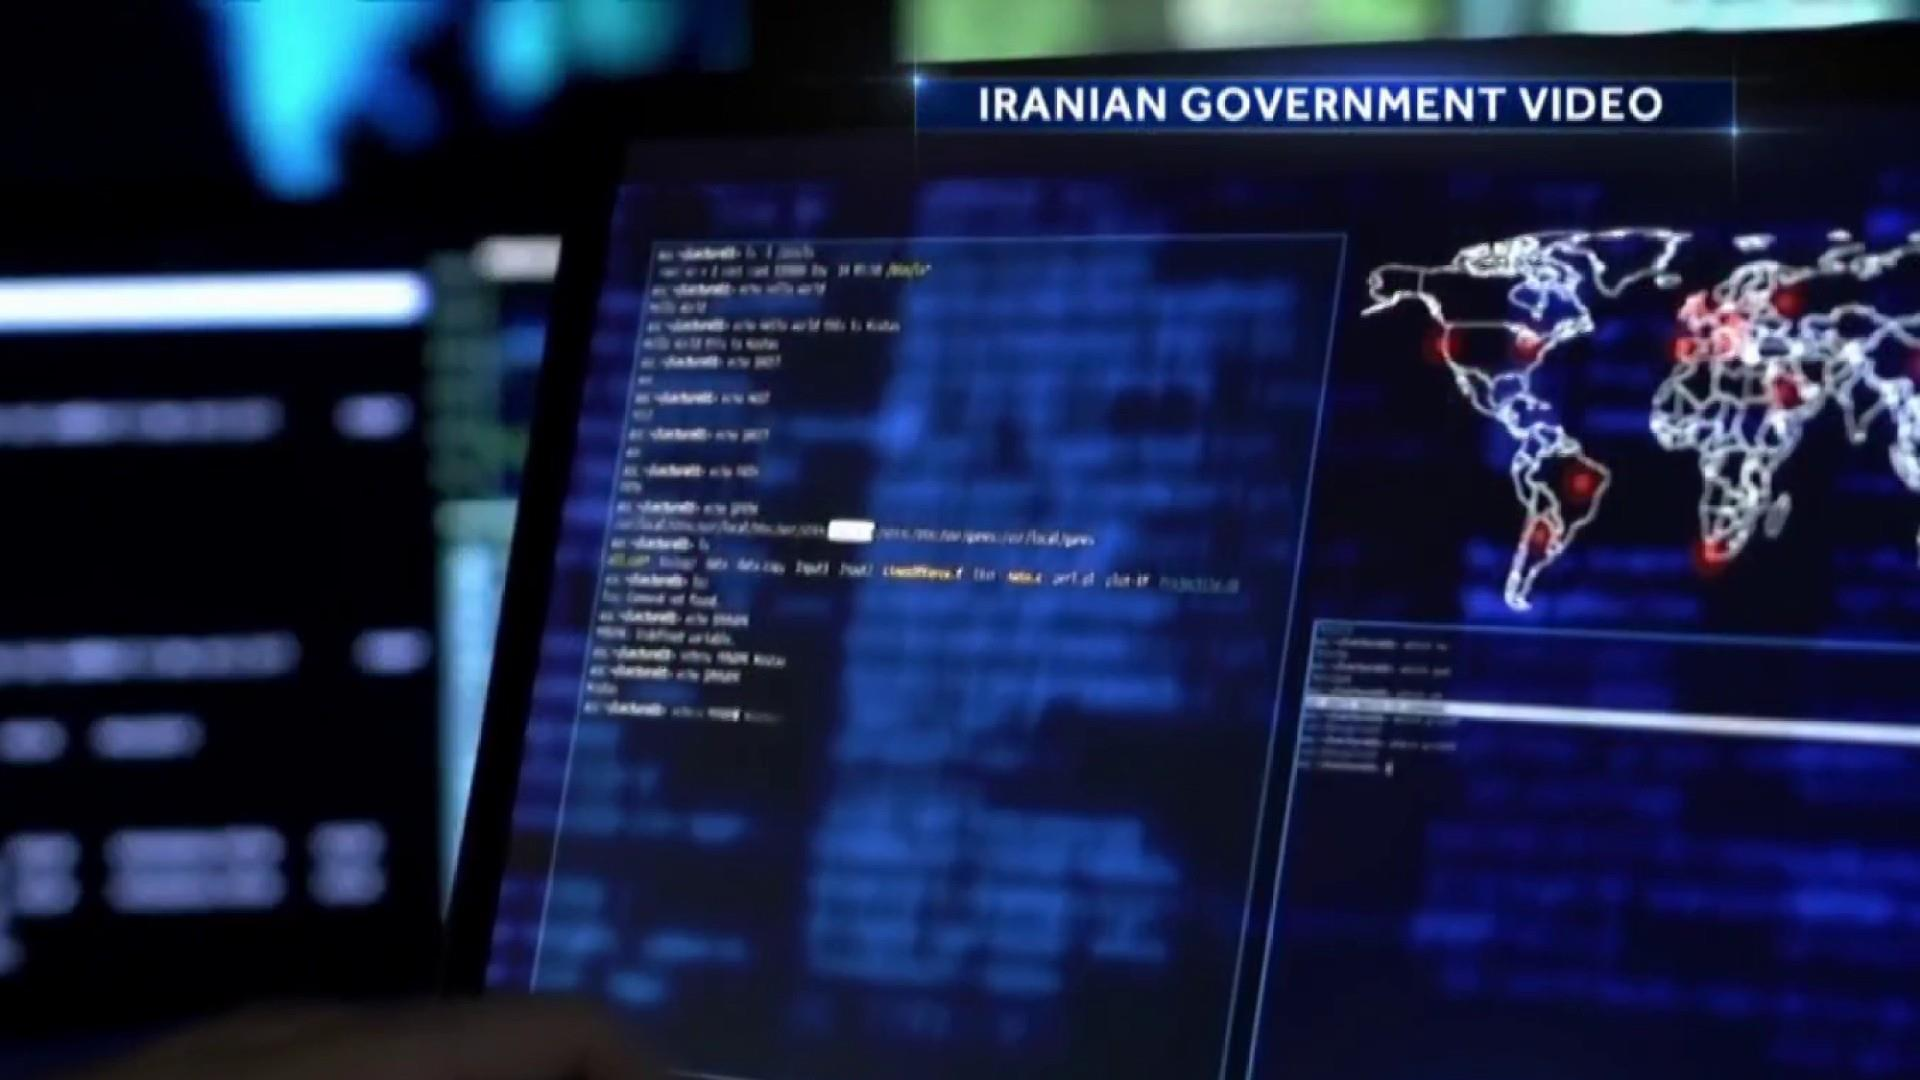 Iran arrests 17 people accused of spying for CIA